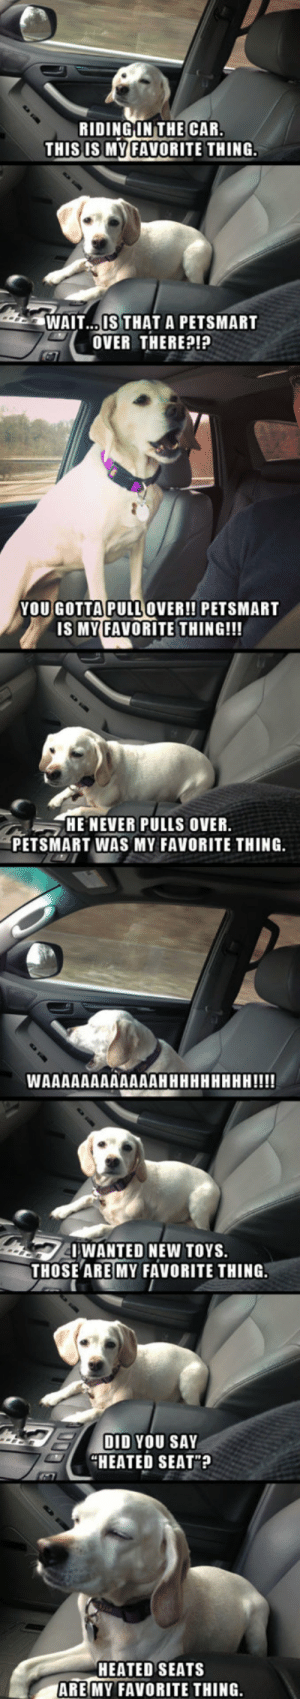 Dogs, Tumblr, and Blog: RIDINGINTHE CAR  THIS IS MYFAVORITE THING.  WAIT..IS THAT A PETSMART  OVER THEREP!?  YOUGOTTAPULLOVER!! PETSMART  IS MY FAVORITE THING!!!  HE NEVER PULLS OVER  PETSMART WAS MY FAVORITE THING.  WANTED NEW TOYS  THOSE ARE MY FAVORITE THING  DID YOU SAY  HEATED SEAT?  HEATED SEATS  ARE MY FAVORITE THING srsfunny:A Dog's Favorite Thing